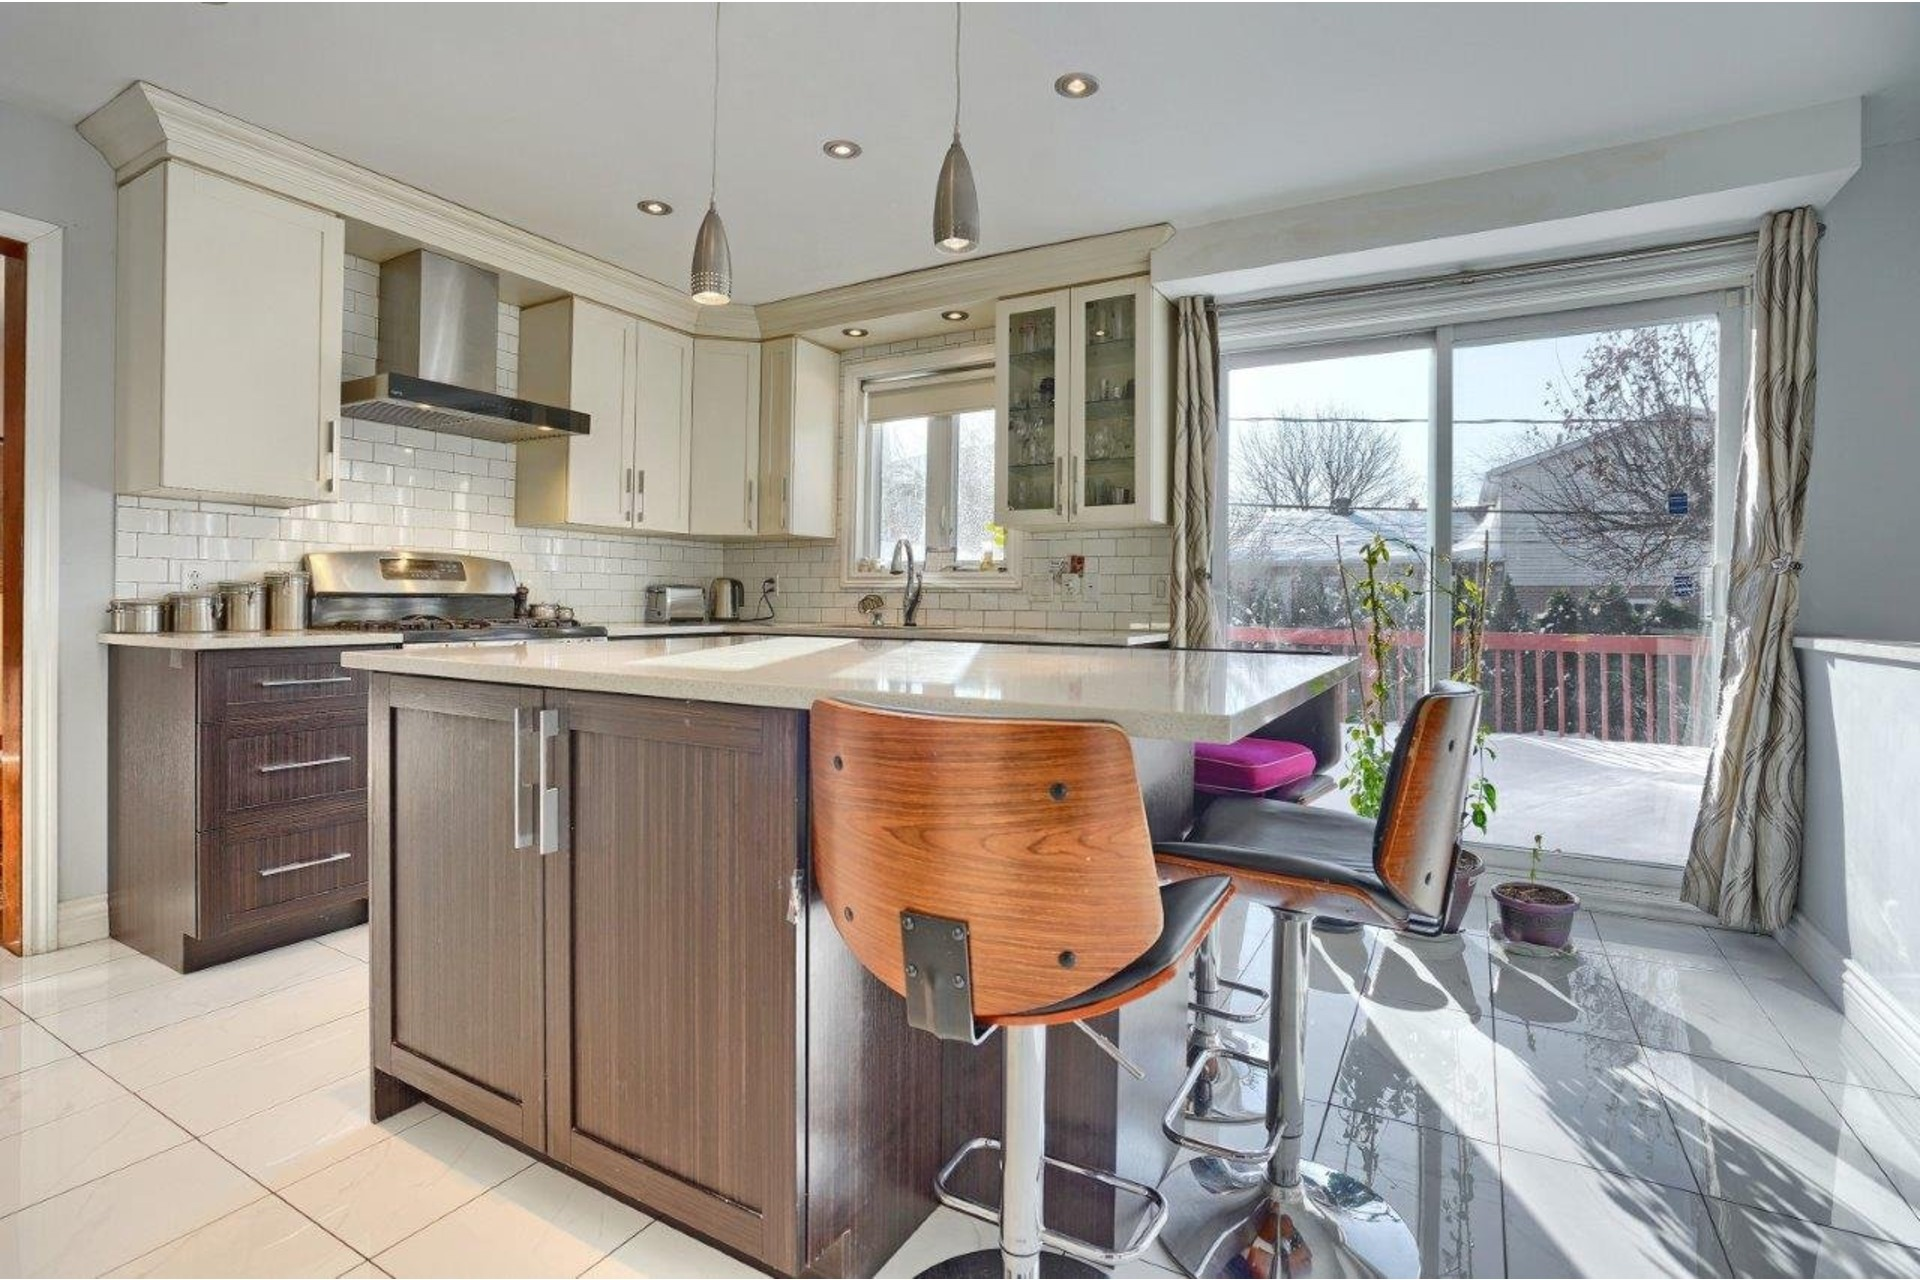 image 4 - House For sale Brossard - 14 rooms